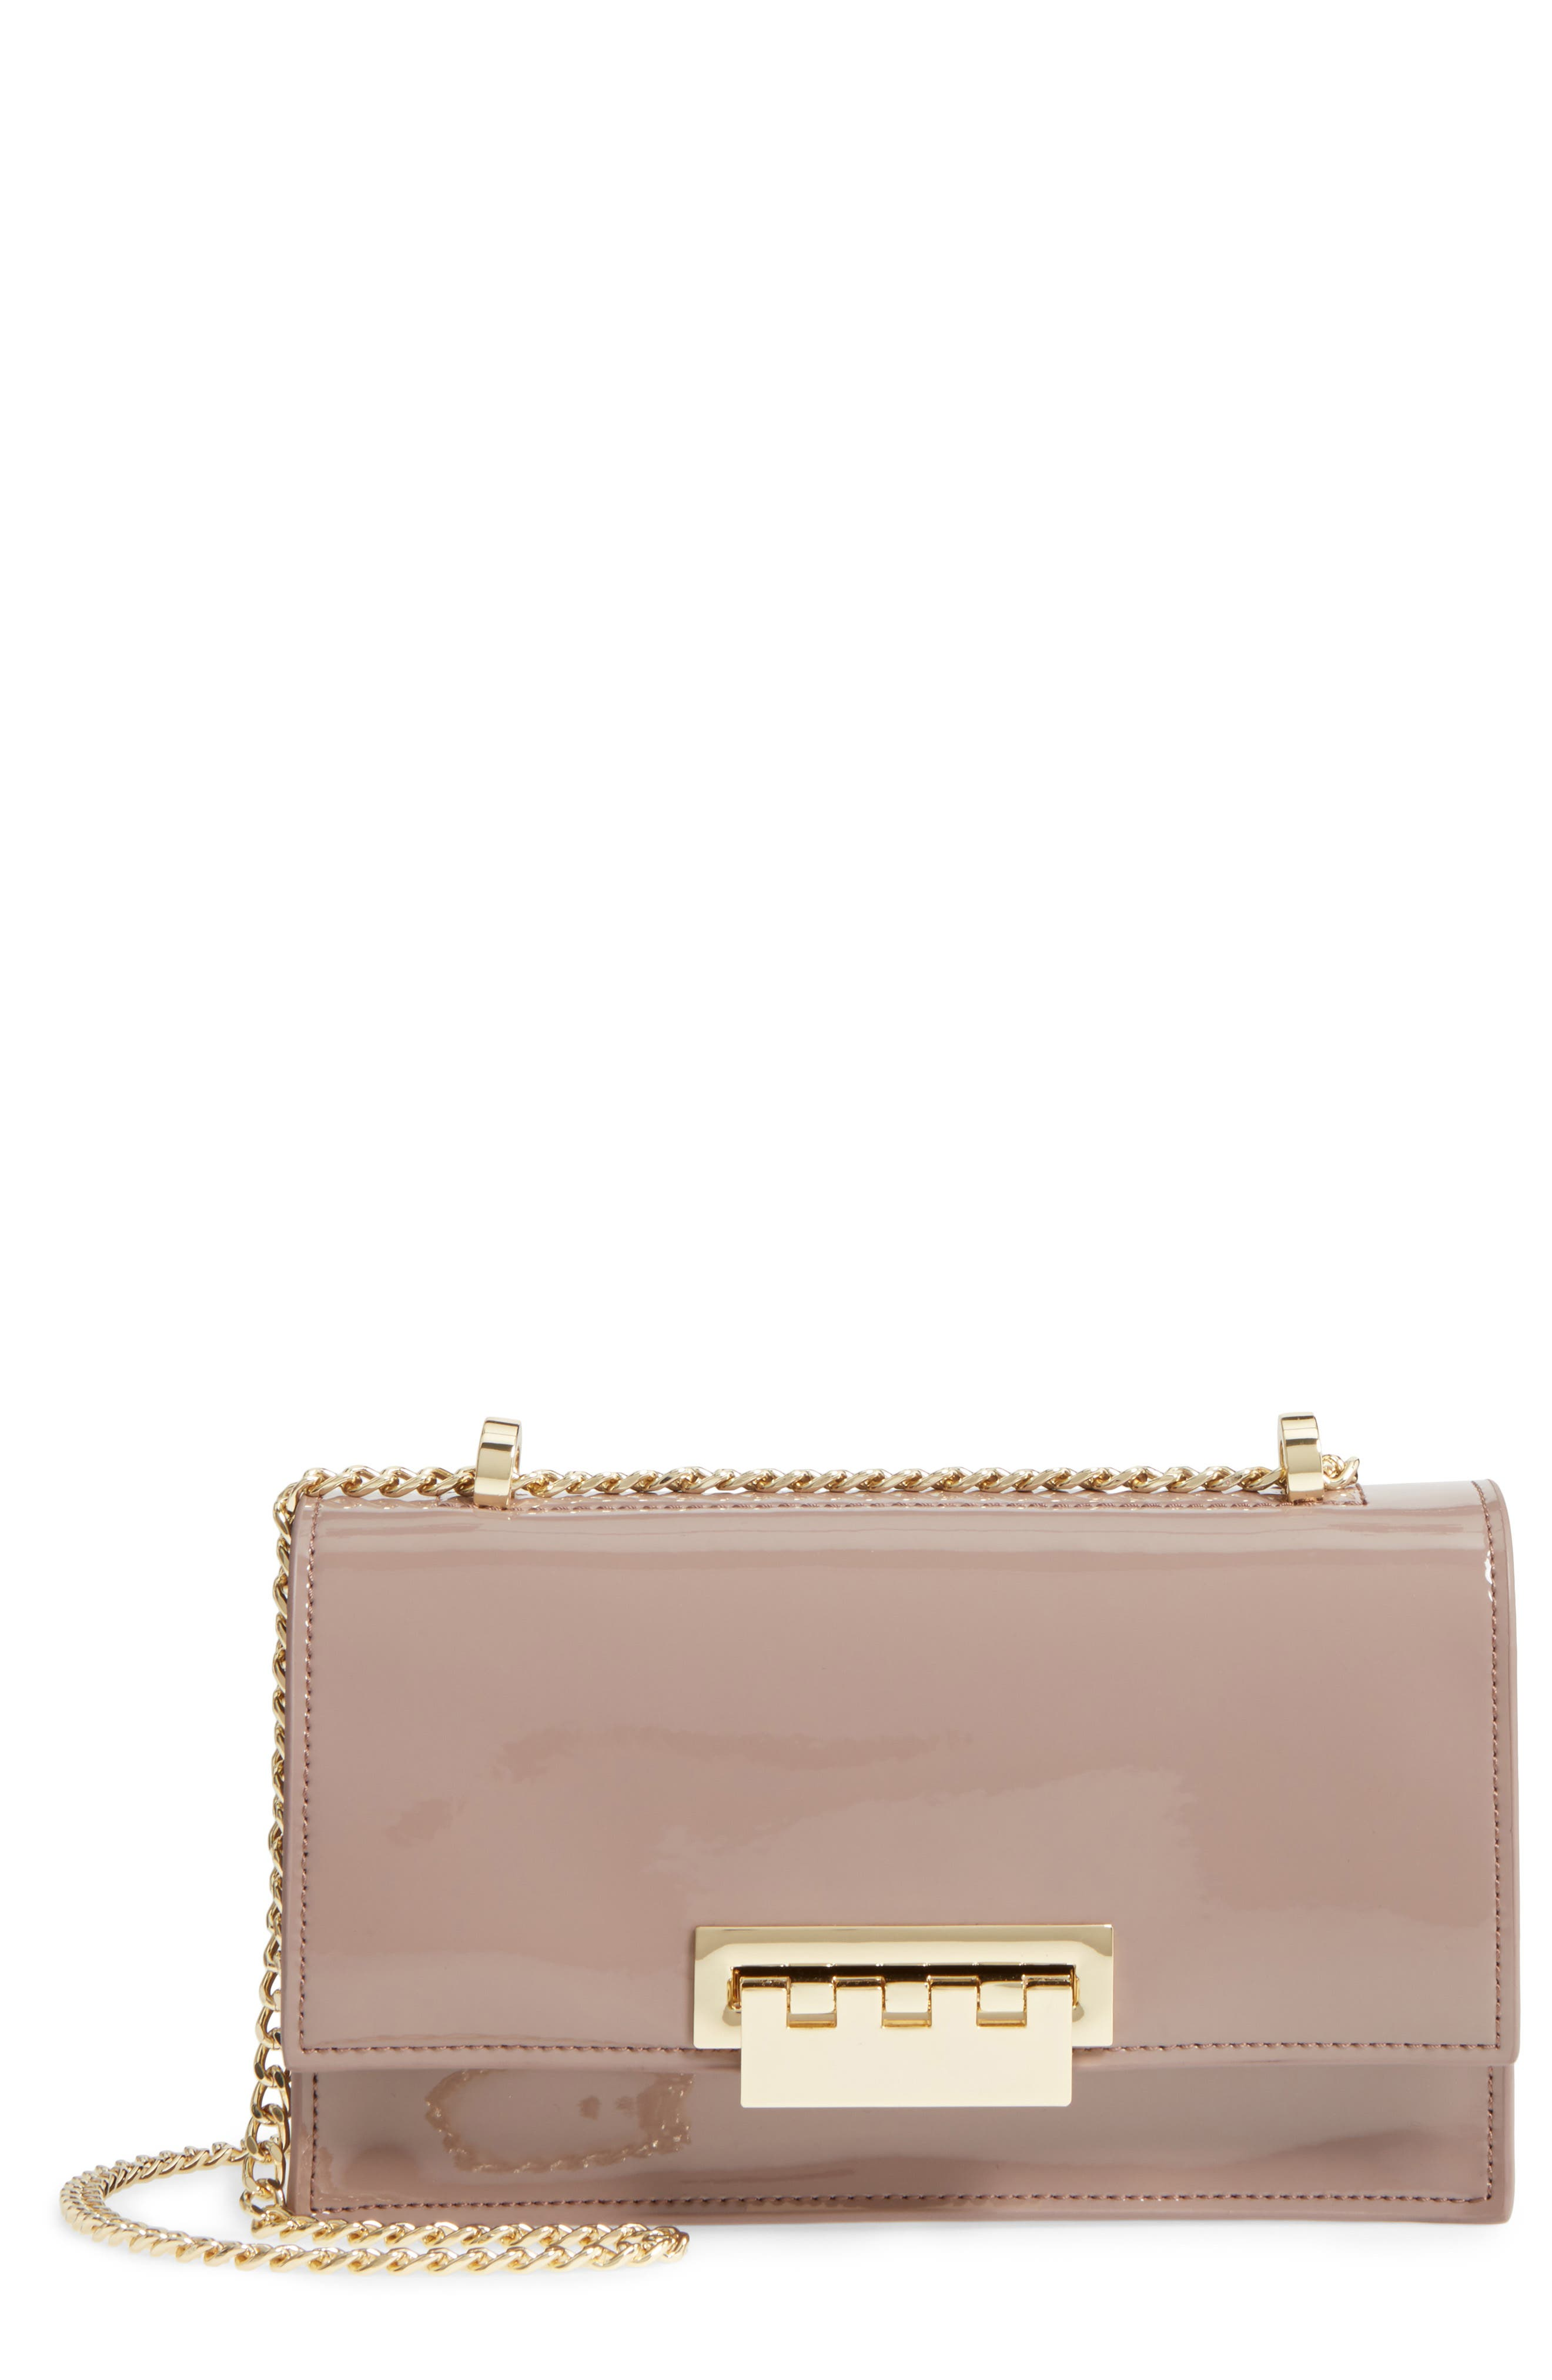 ZAC Zac Posen Earthette Calfskin Shoulder Bag